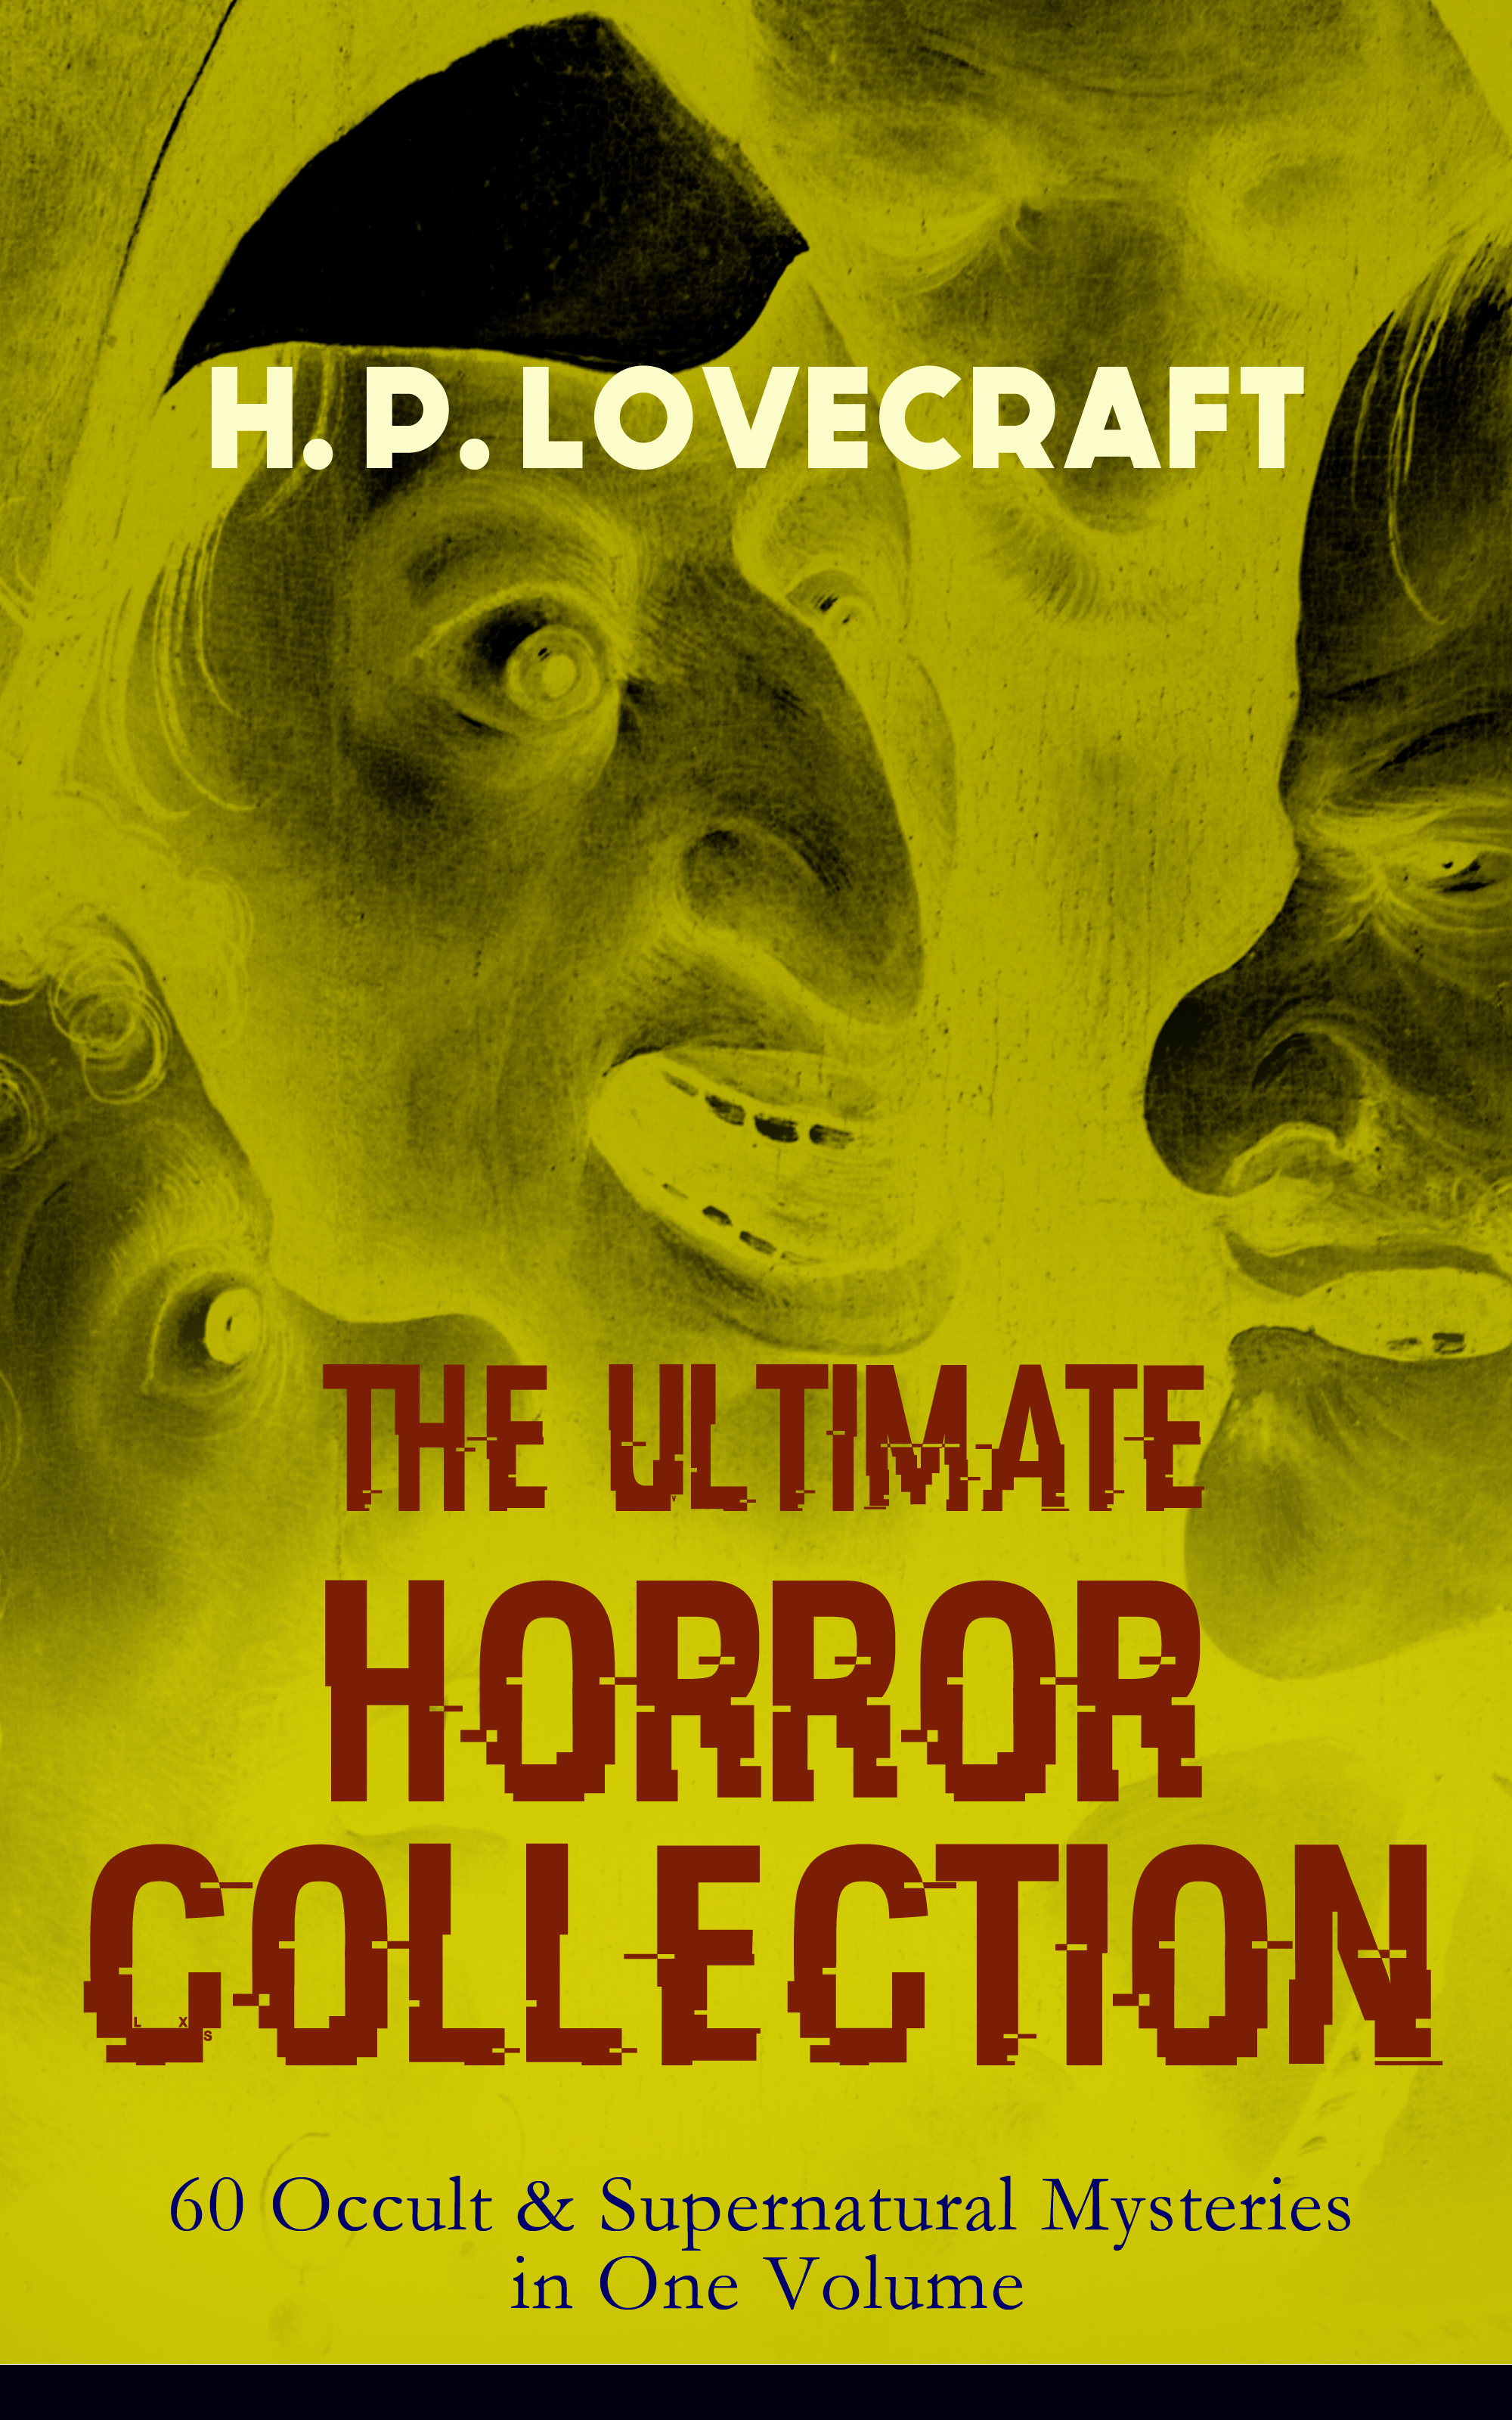 h p lovecraft the ultimate horror collection 60 occult supernatural mysteries in one volume